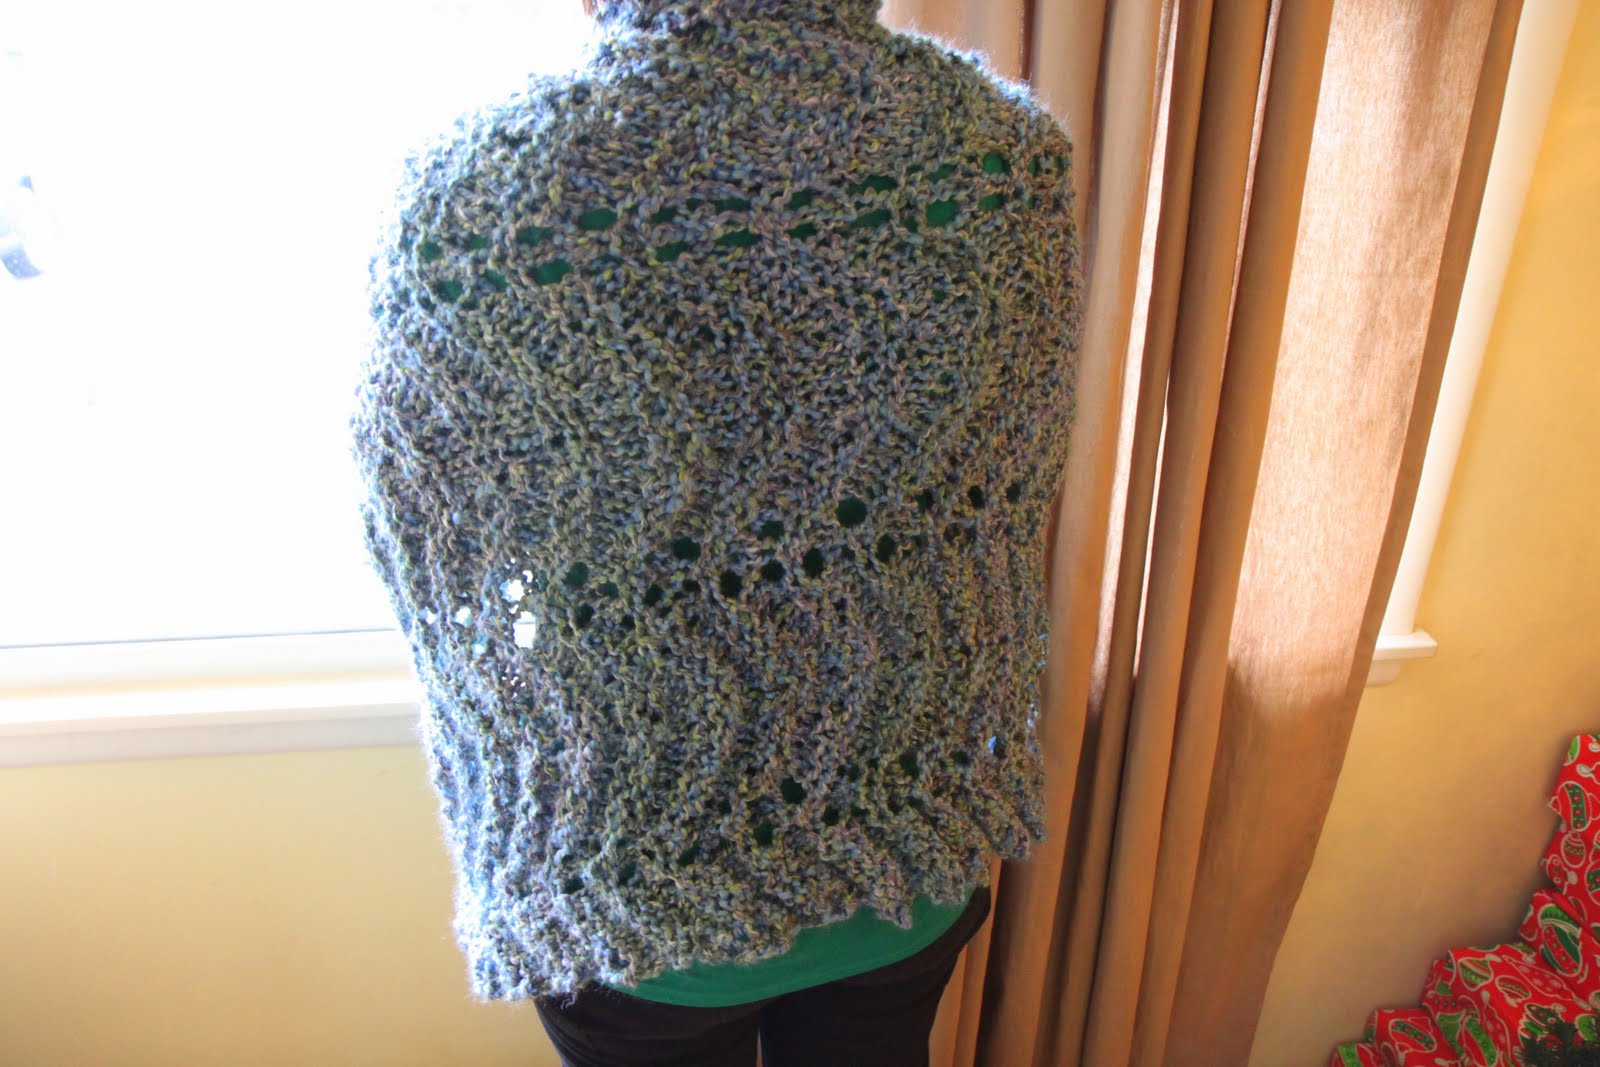 Crochet Prayer Shawl : Gifts You Can Make: Knitted Prayer Shawls - MomAdvice